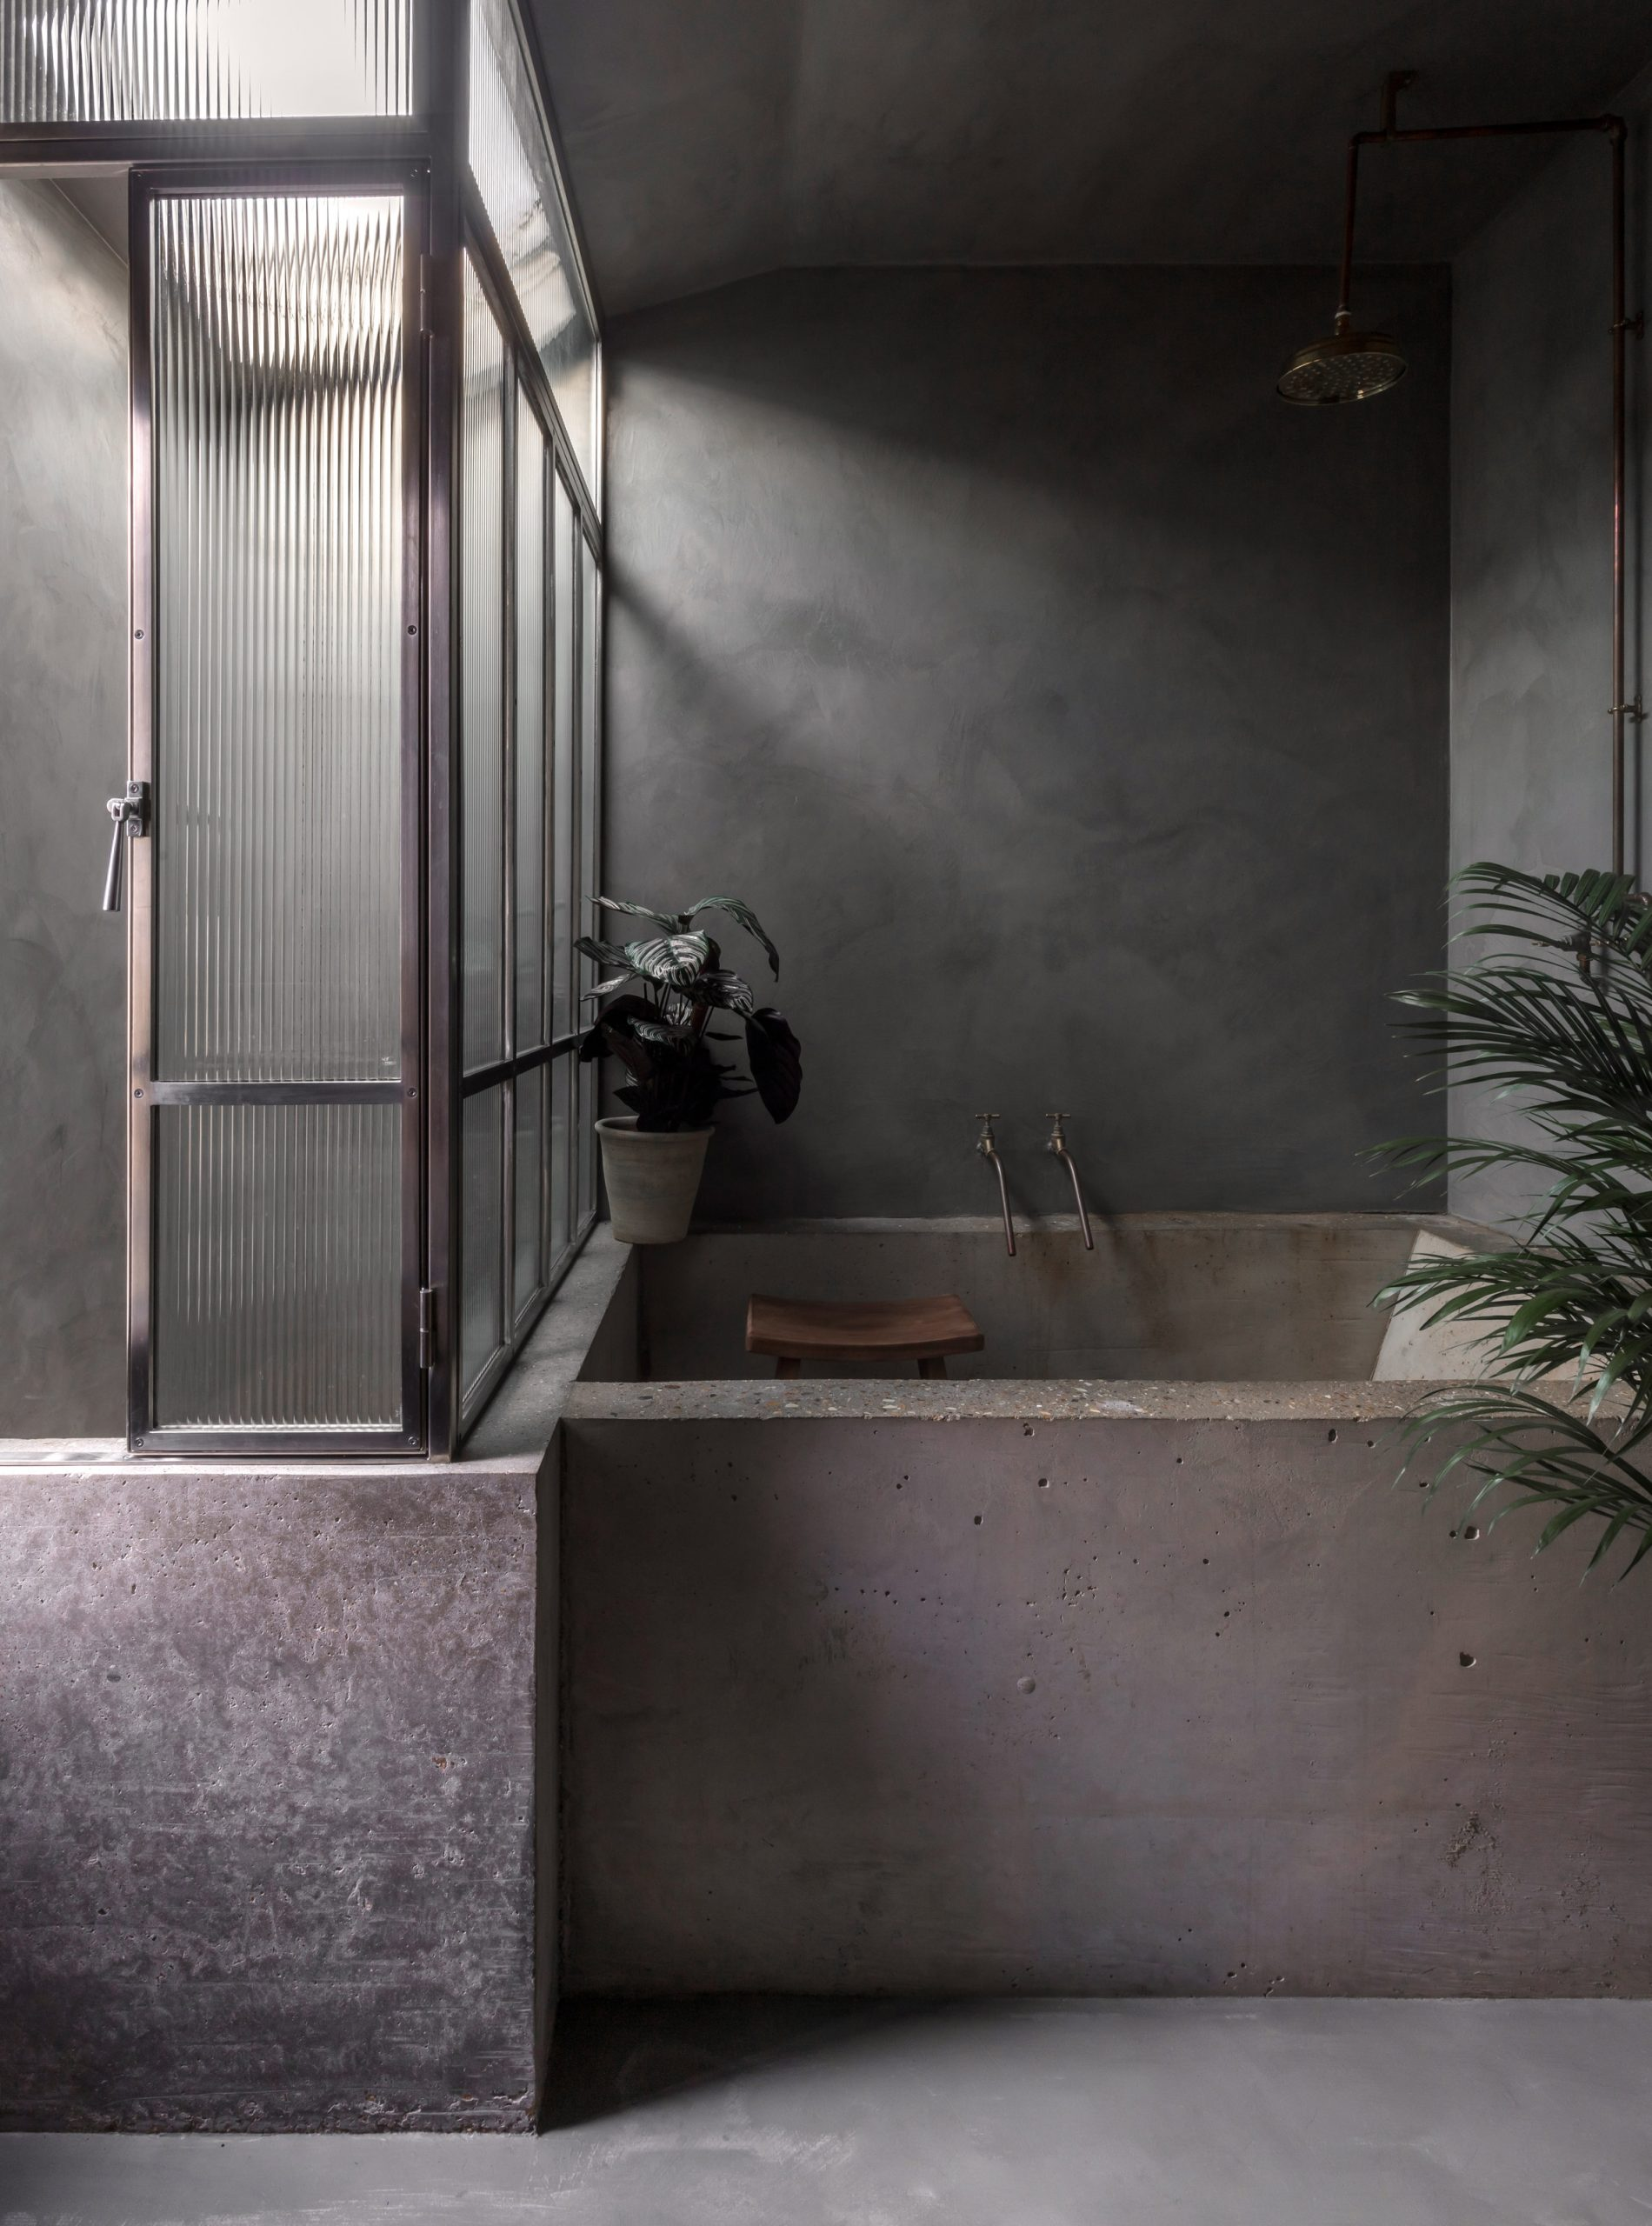 Concrete bath and Crittal screen in bathroom of Untiled House extension by Szczepaniak Astridge in London